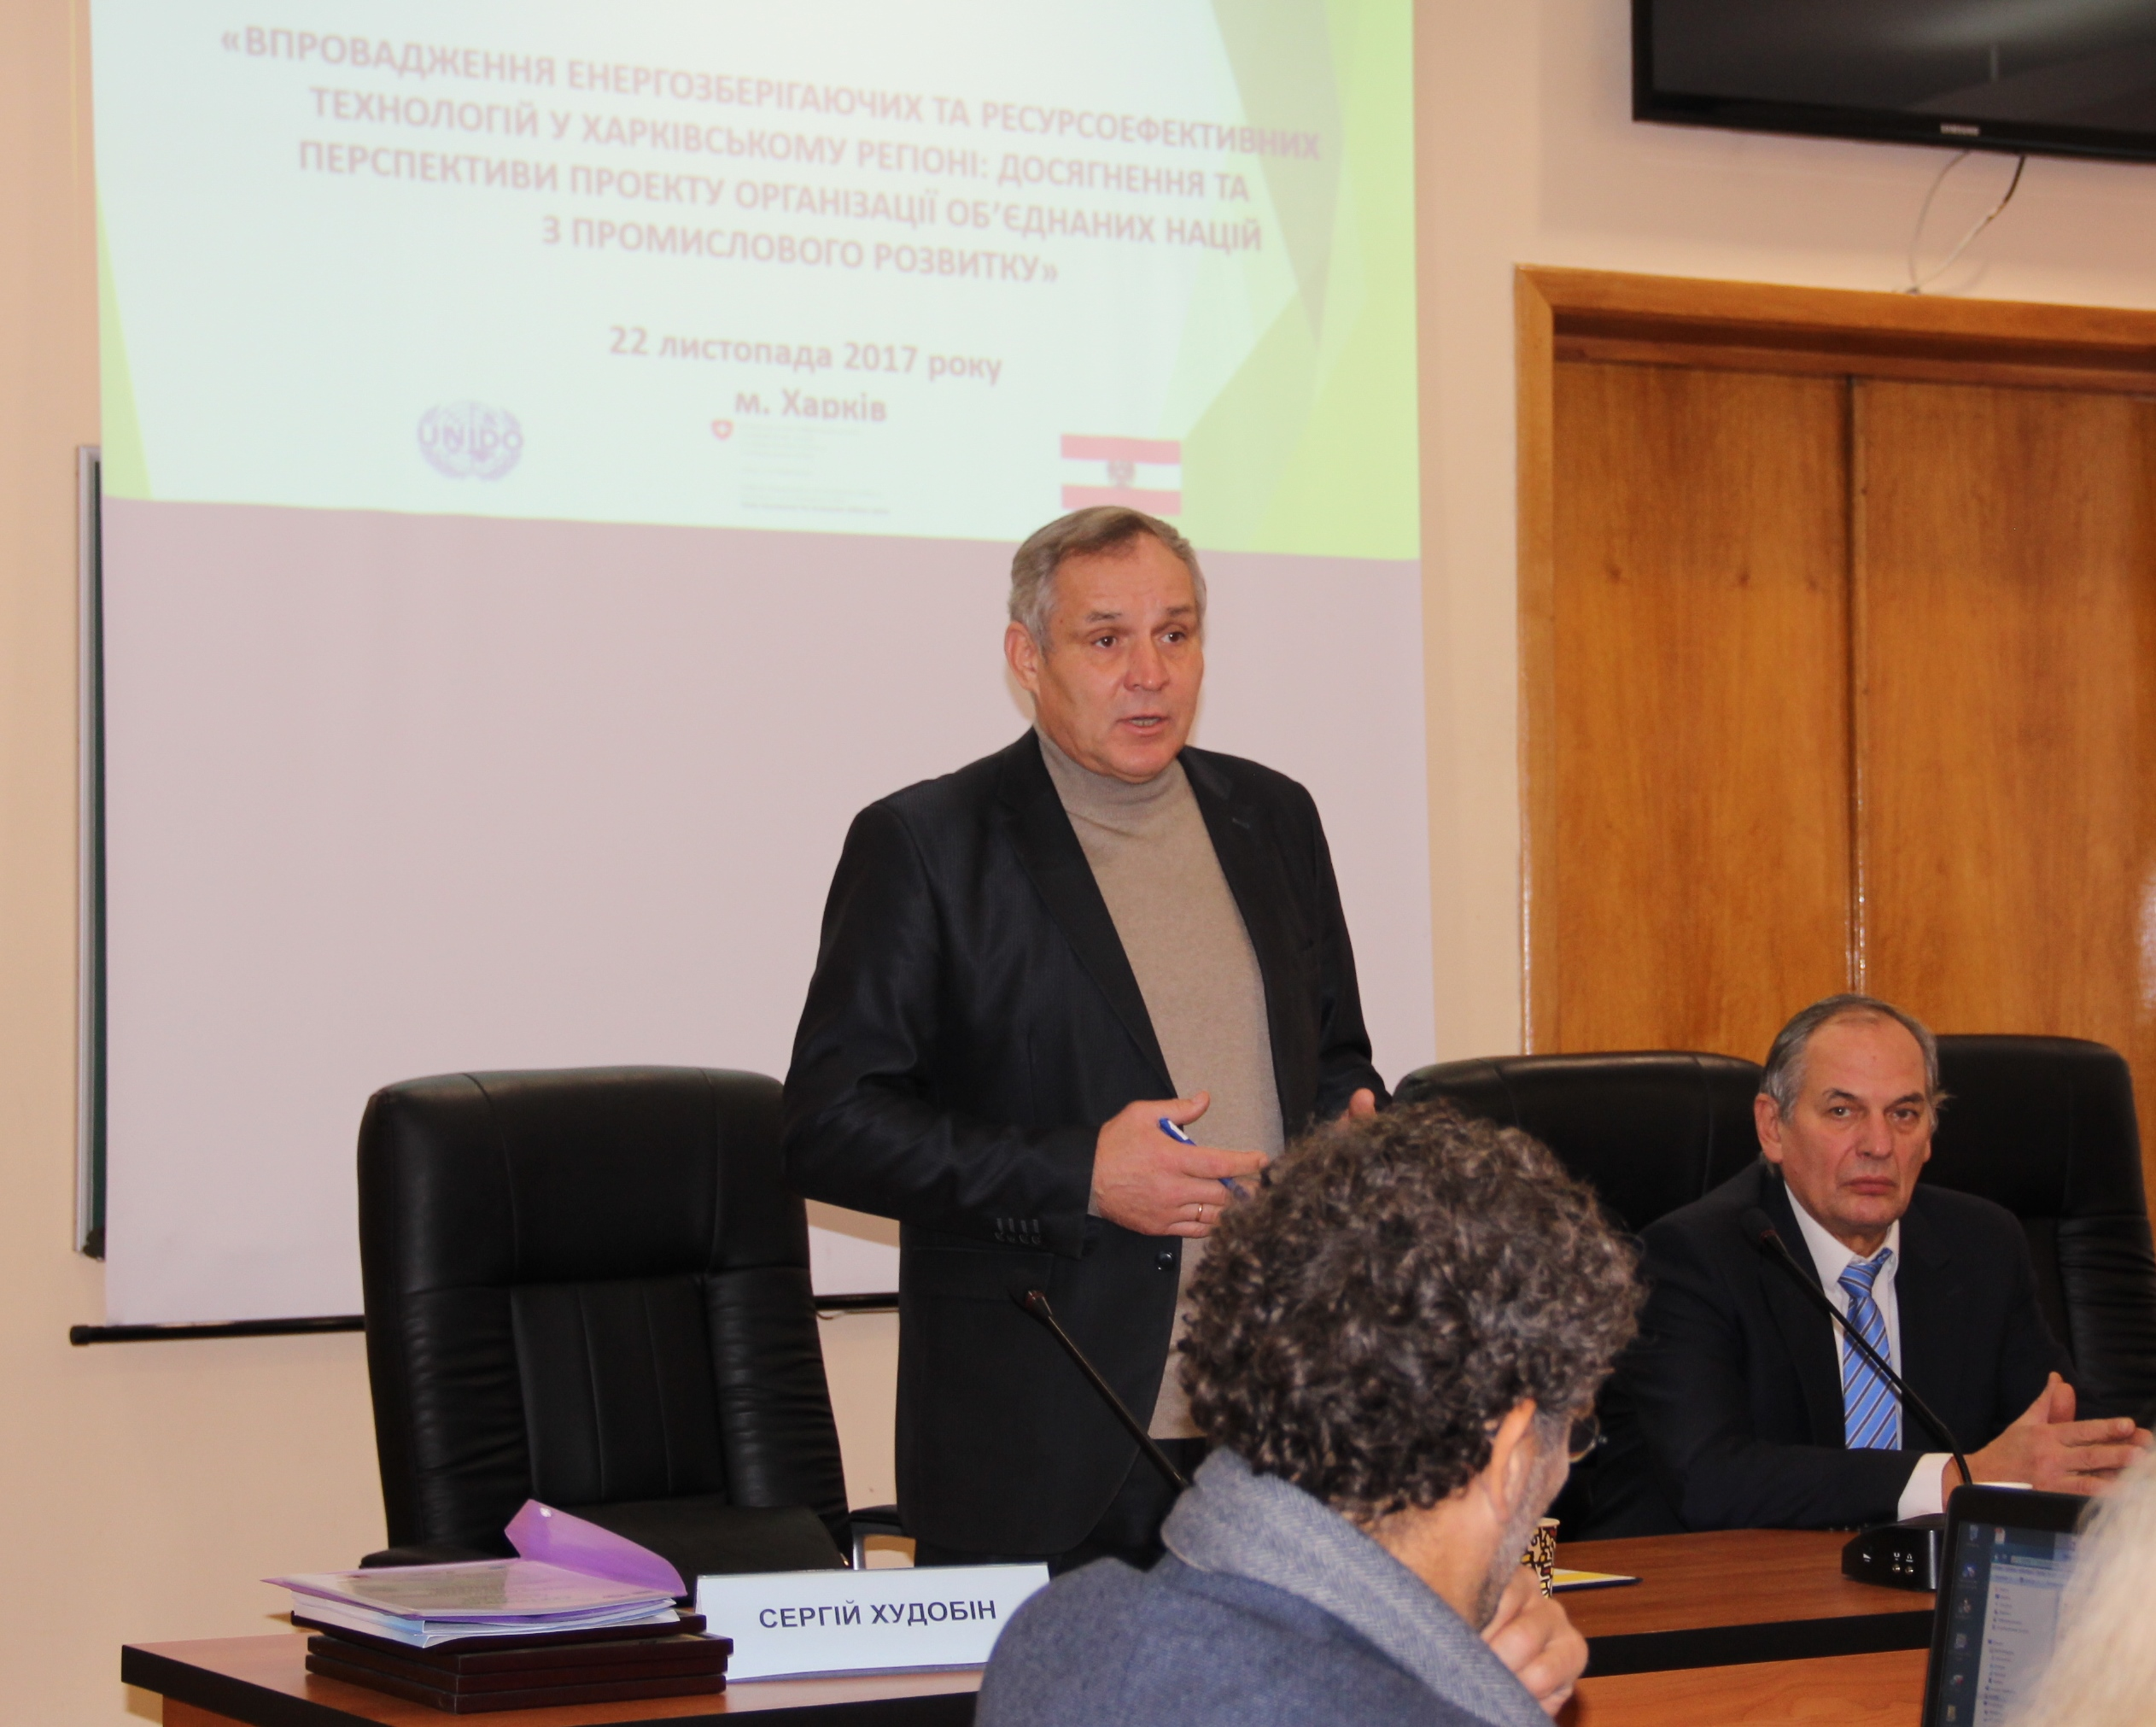 Energy efficiency at Kharkiv-based companies - European practice...